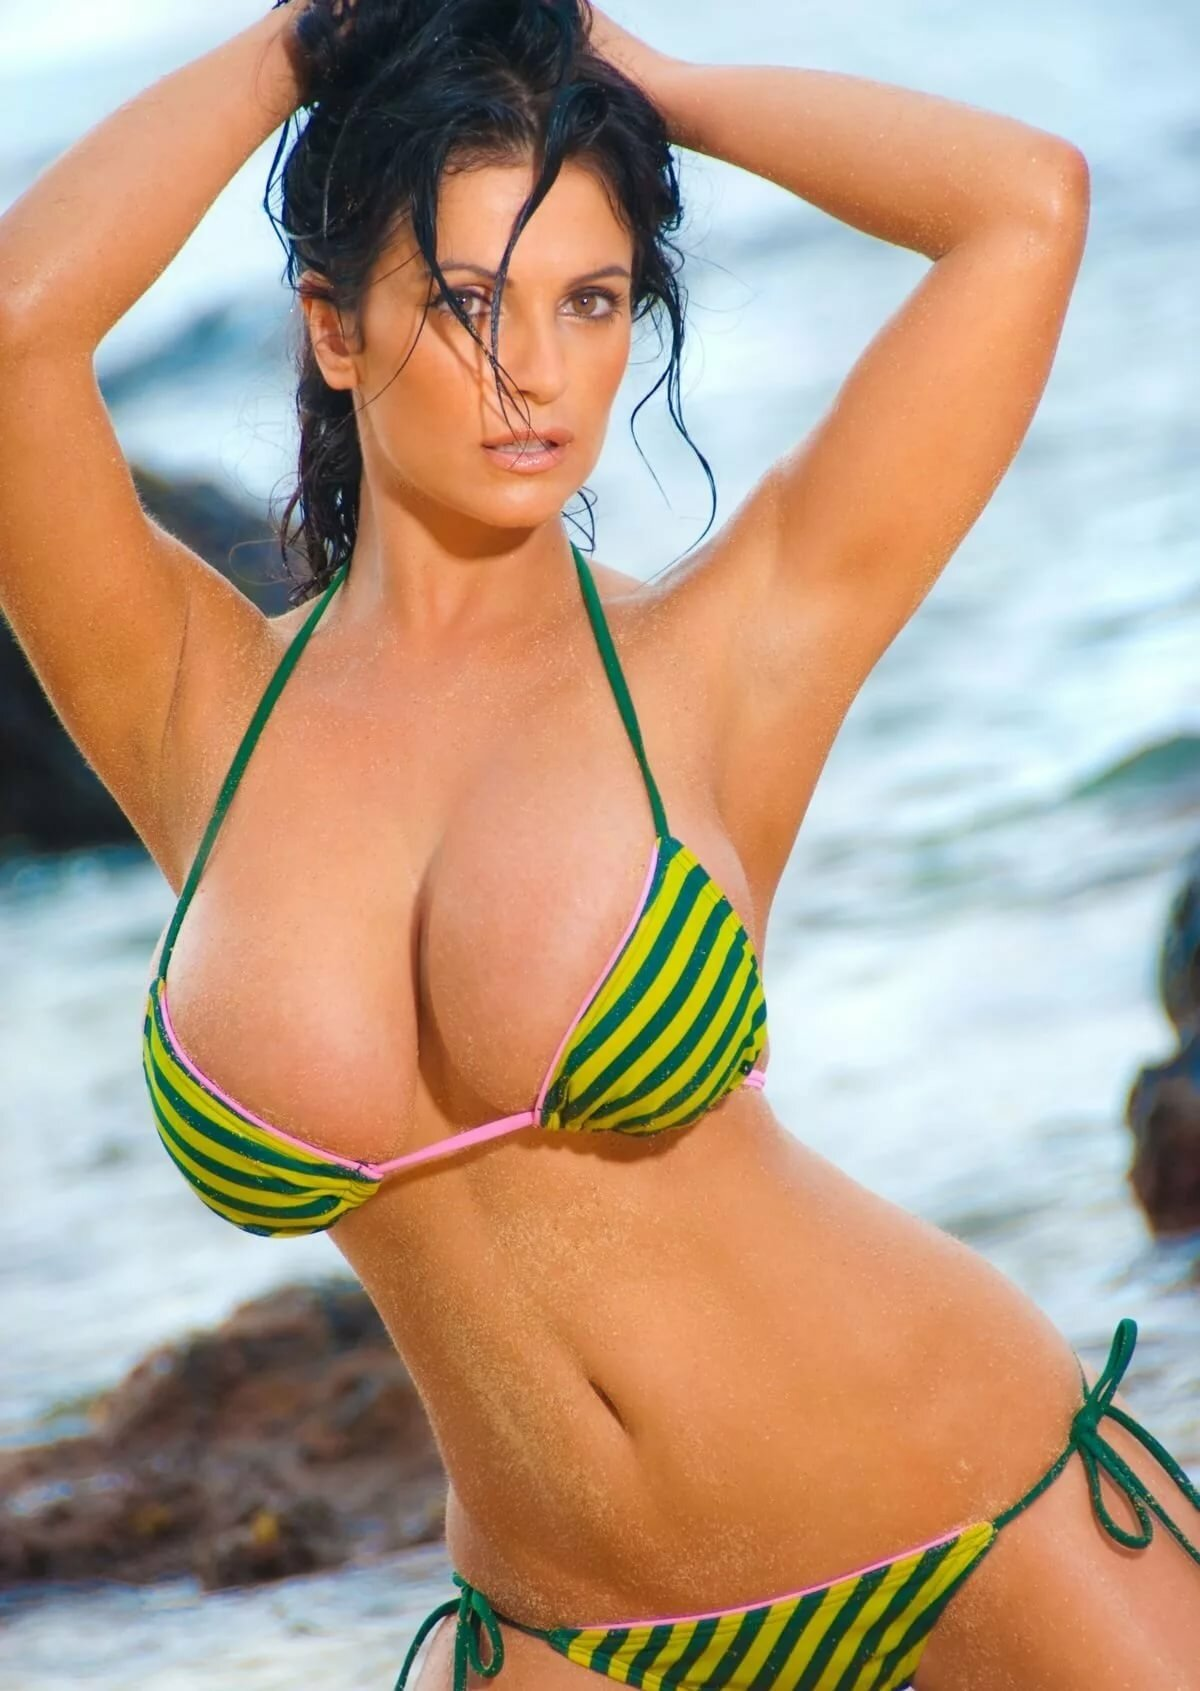 Big boobs swimwear